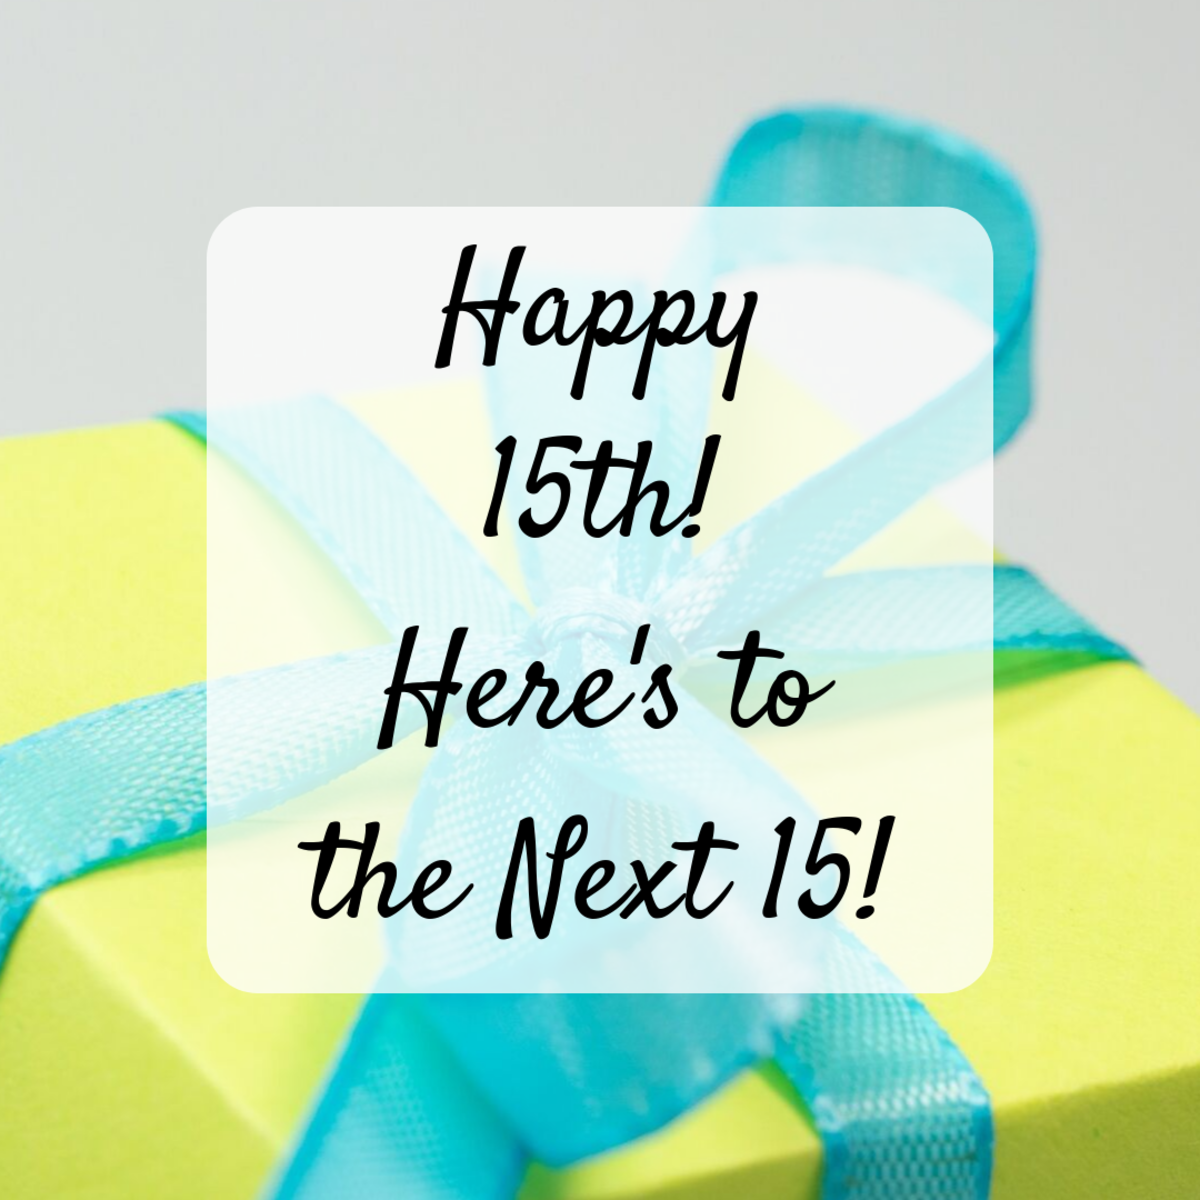 Send your best wishes for the many happy years to come!